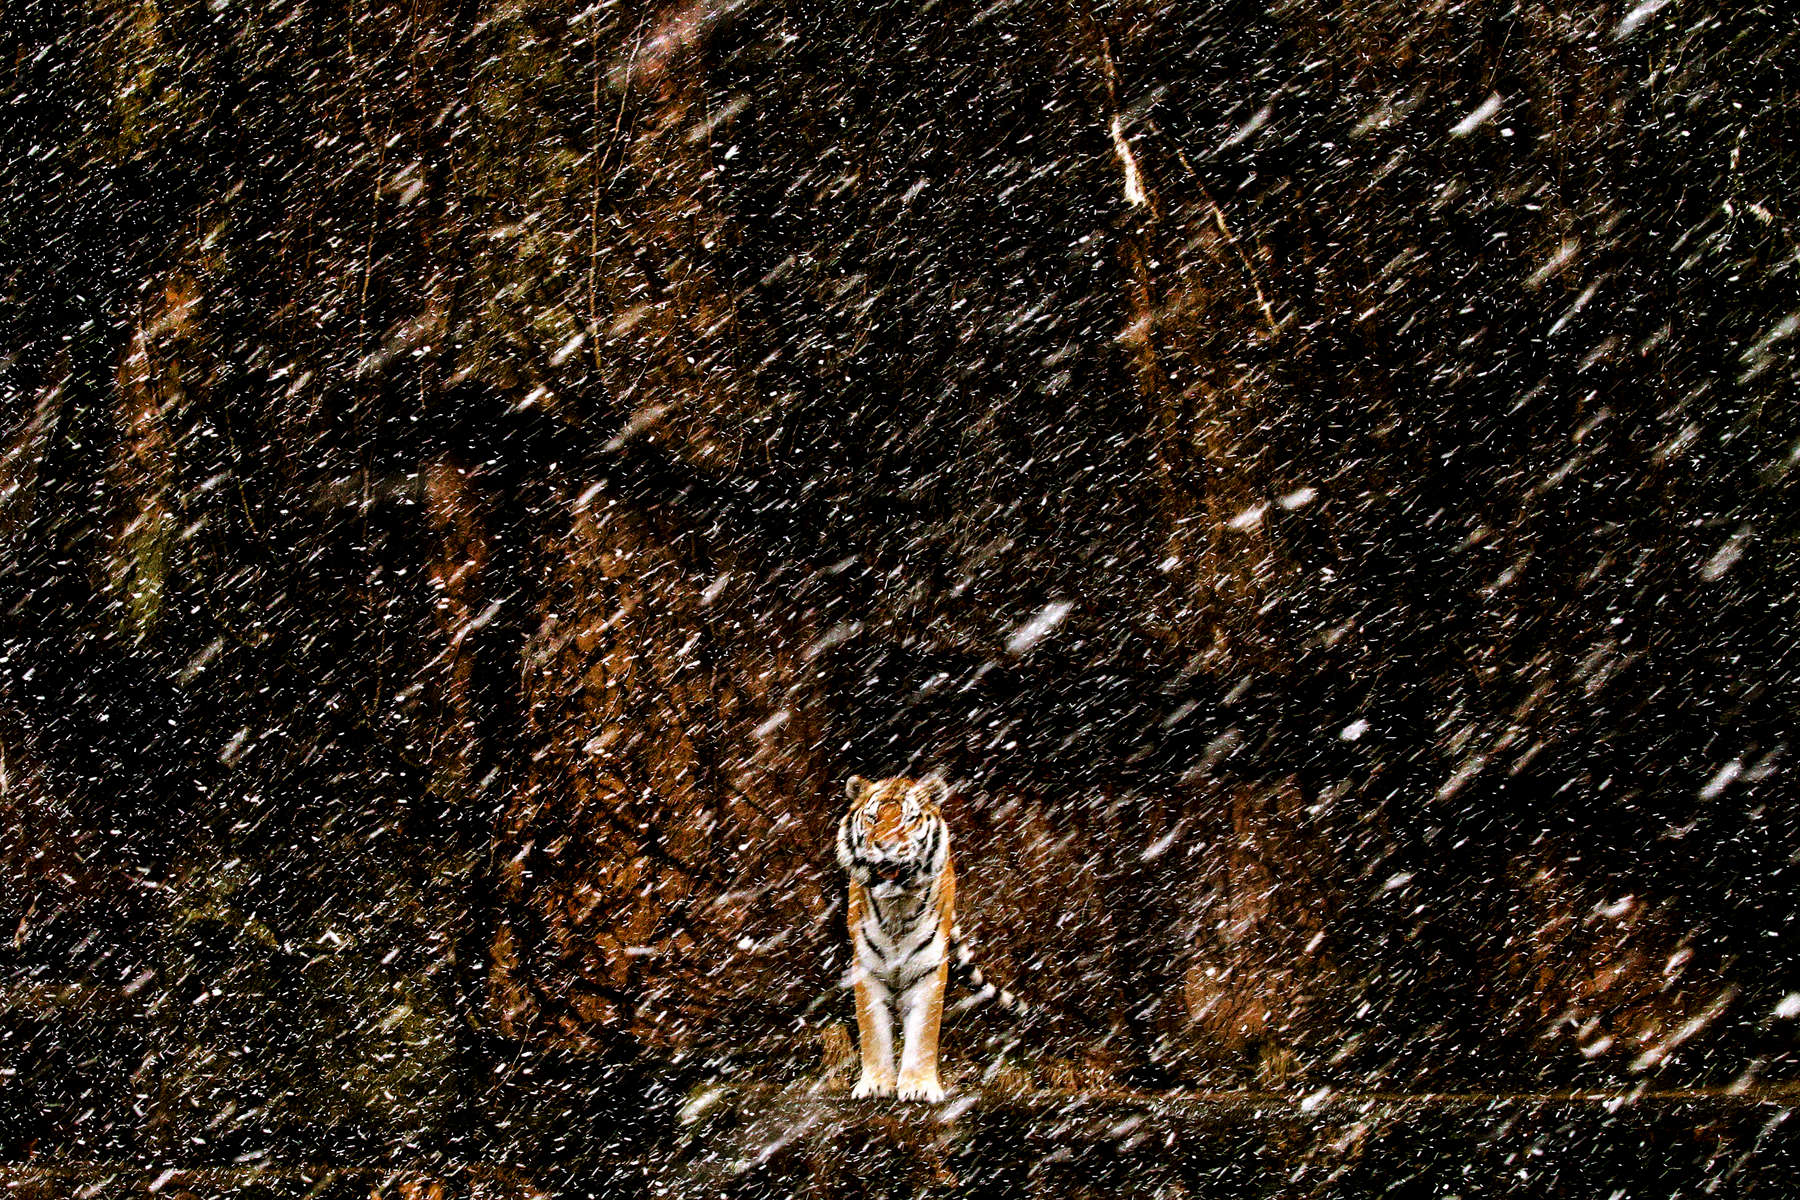 Pavel, an 8-year-old Amur tiger, watched a sudden snow storm from his enclosure at the Lincoln Park Zoo in Chicago.